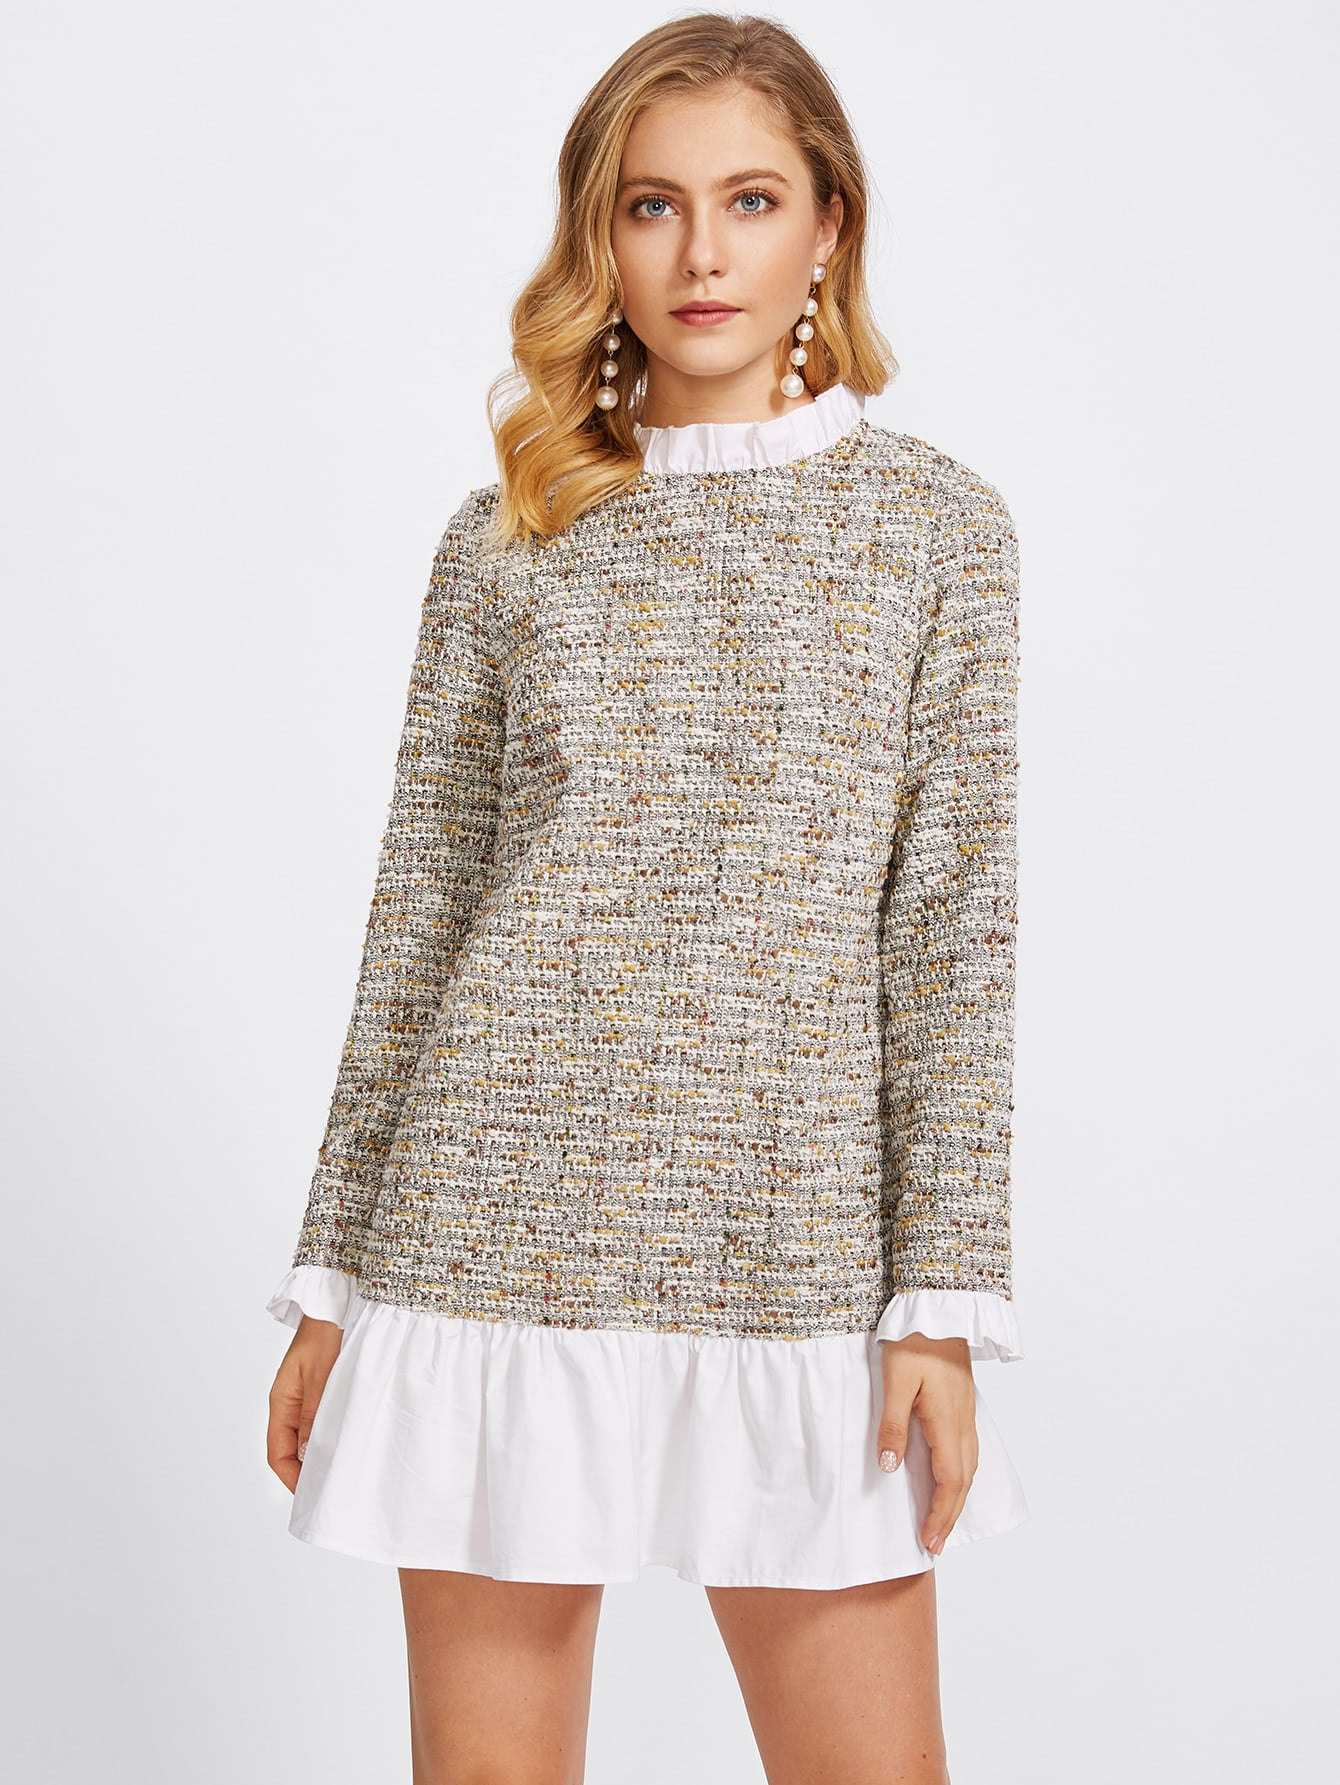 Frill Detail 2 In 1 Tweed Dress frill layered pearl detail sweatshirt dress